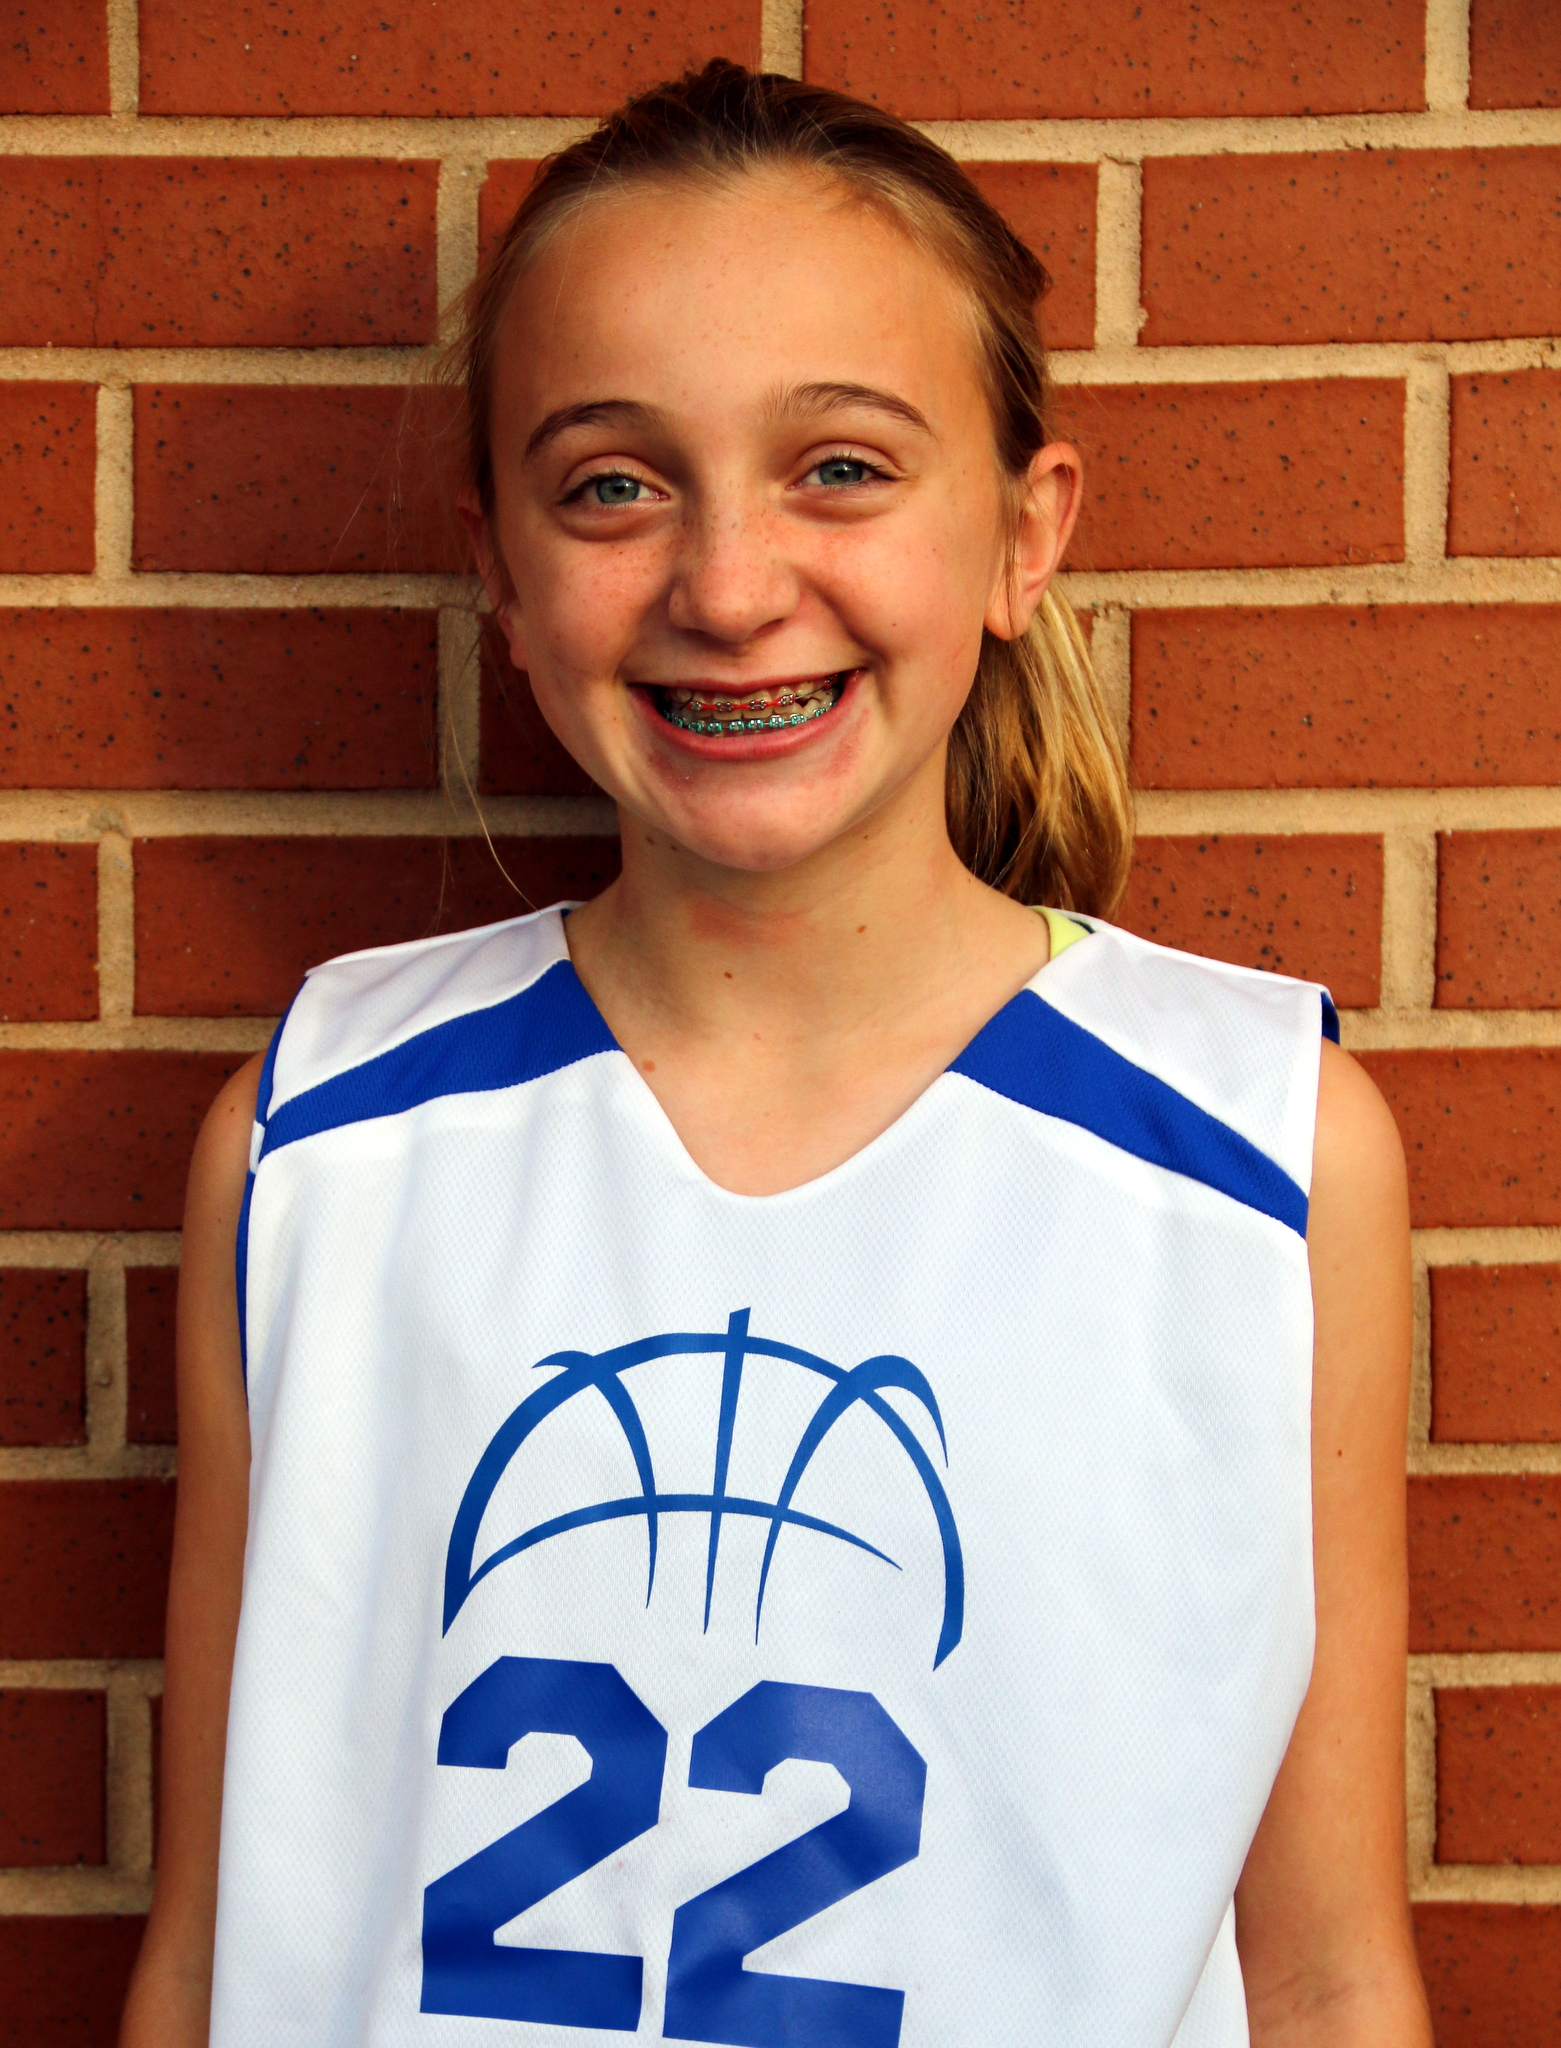 "GRACE WARD 6th grade girls ""Grace Ward is the Player of the Week for the 6th Grade Girls based on her solid contributions in our three games over the weekend. This led the girls to a five game winning streak. Grace's rebounds, scoring and overall effort were key to each victory."""